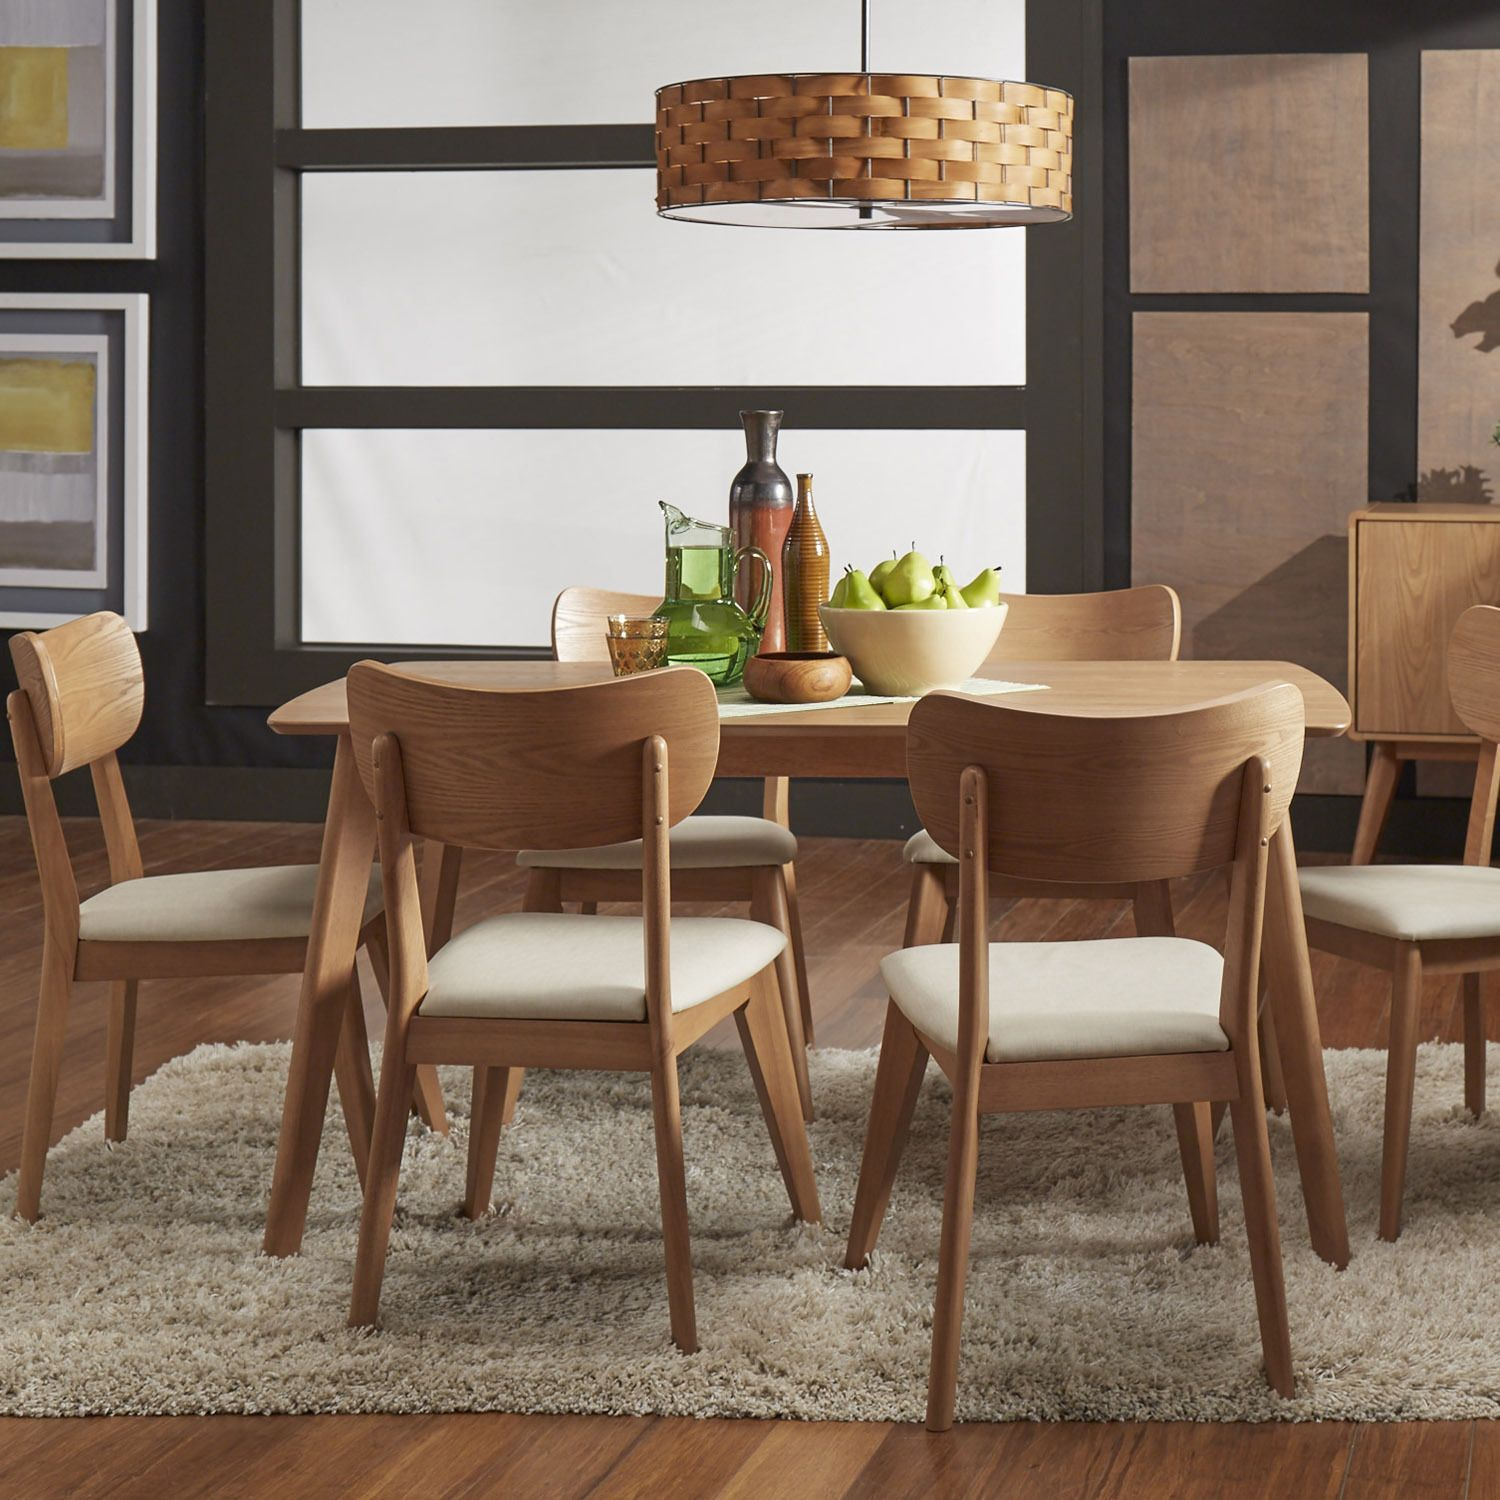 Penelope Danish Modern Natural Oak Dining Set iNSPIRE Q Modern by iNSPIRE Q